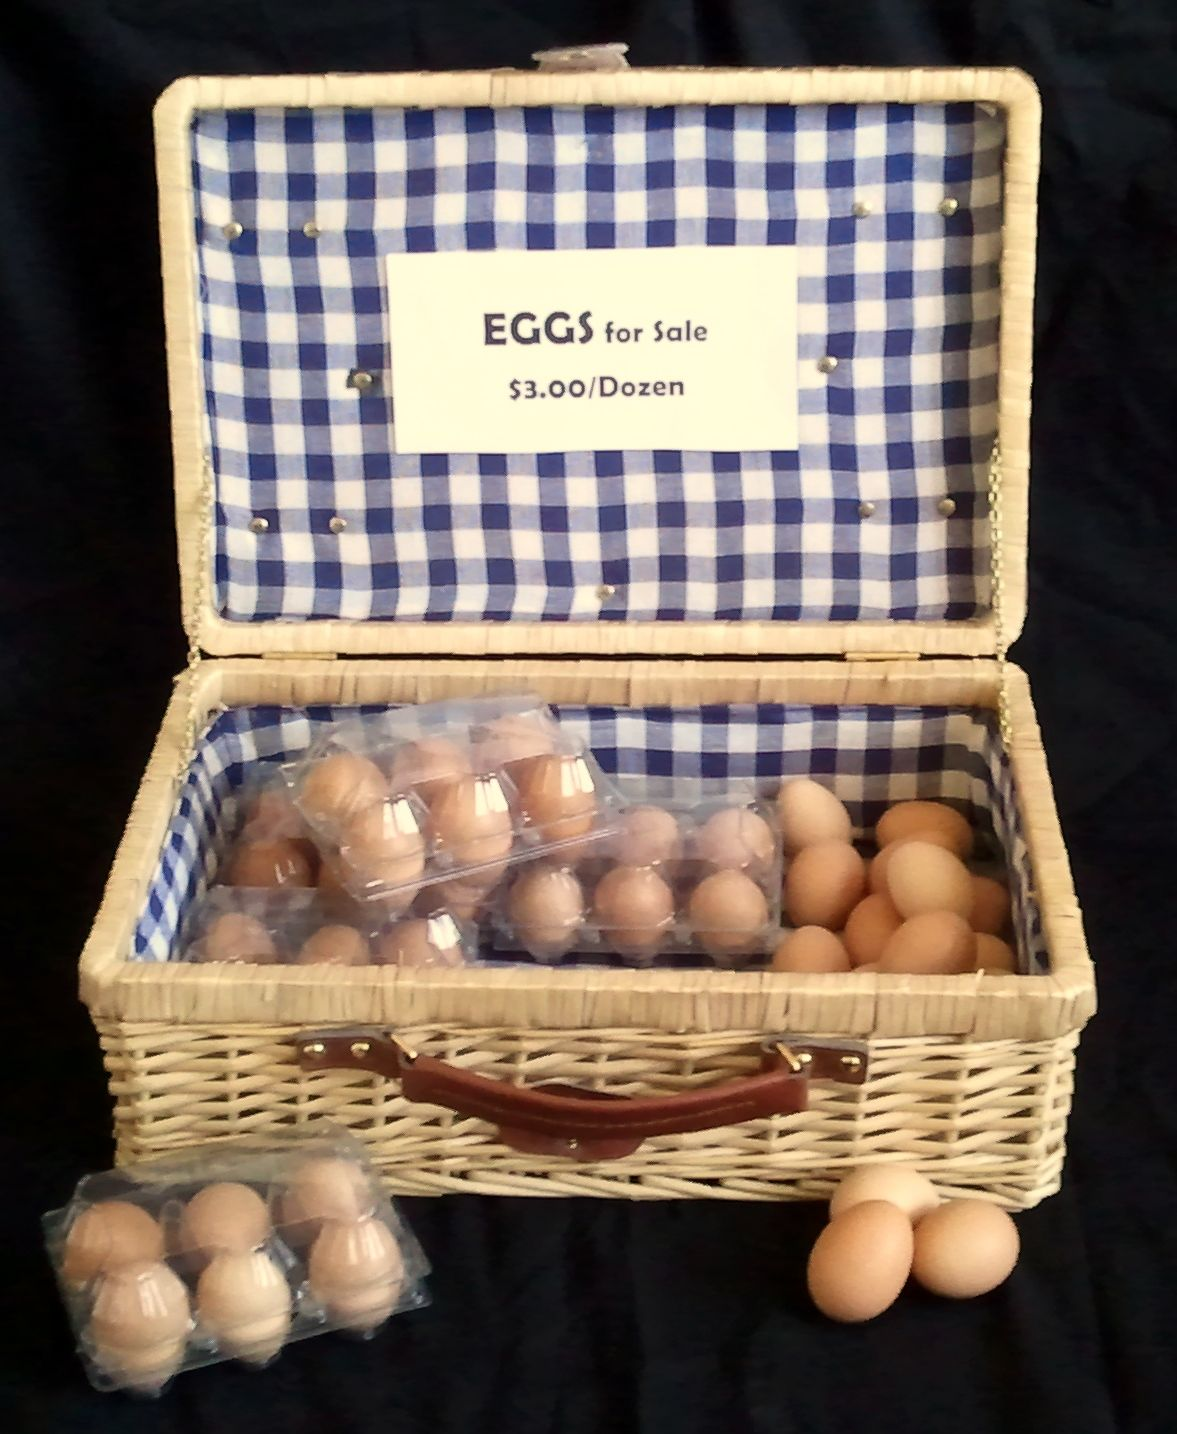 Fresh Eggs Daily Selling Your Eggs Chickens Backyard Selling Eggs Eggs For Sale